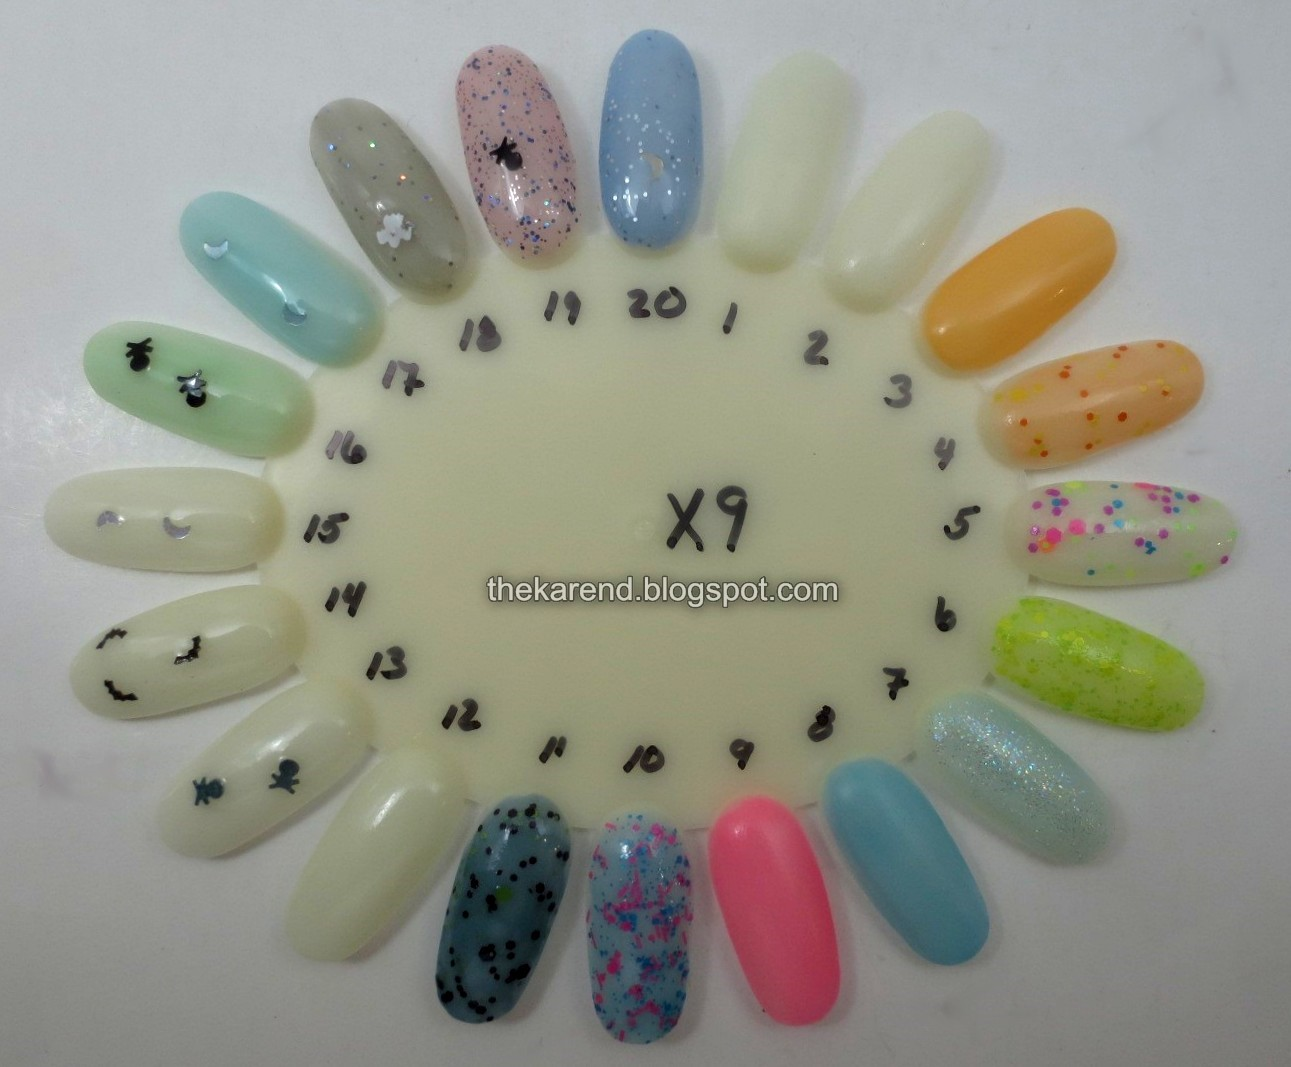 Frazzle and Aniploish: Wheel X9: Glow in the Dark Polishes